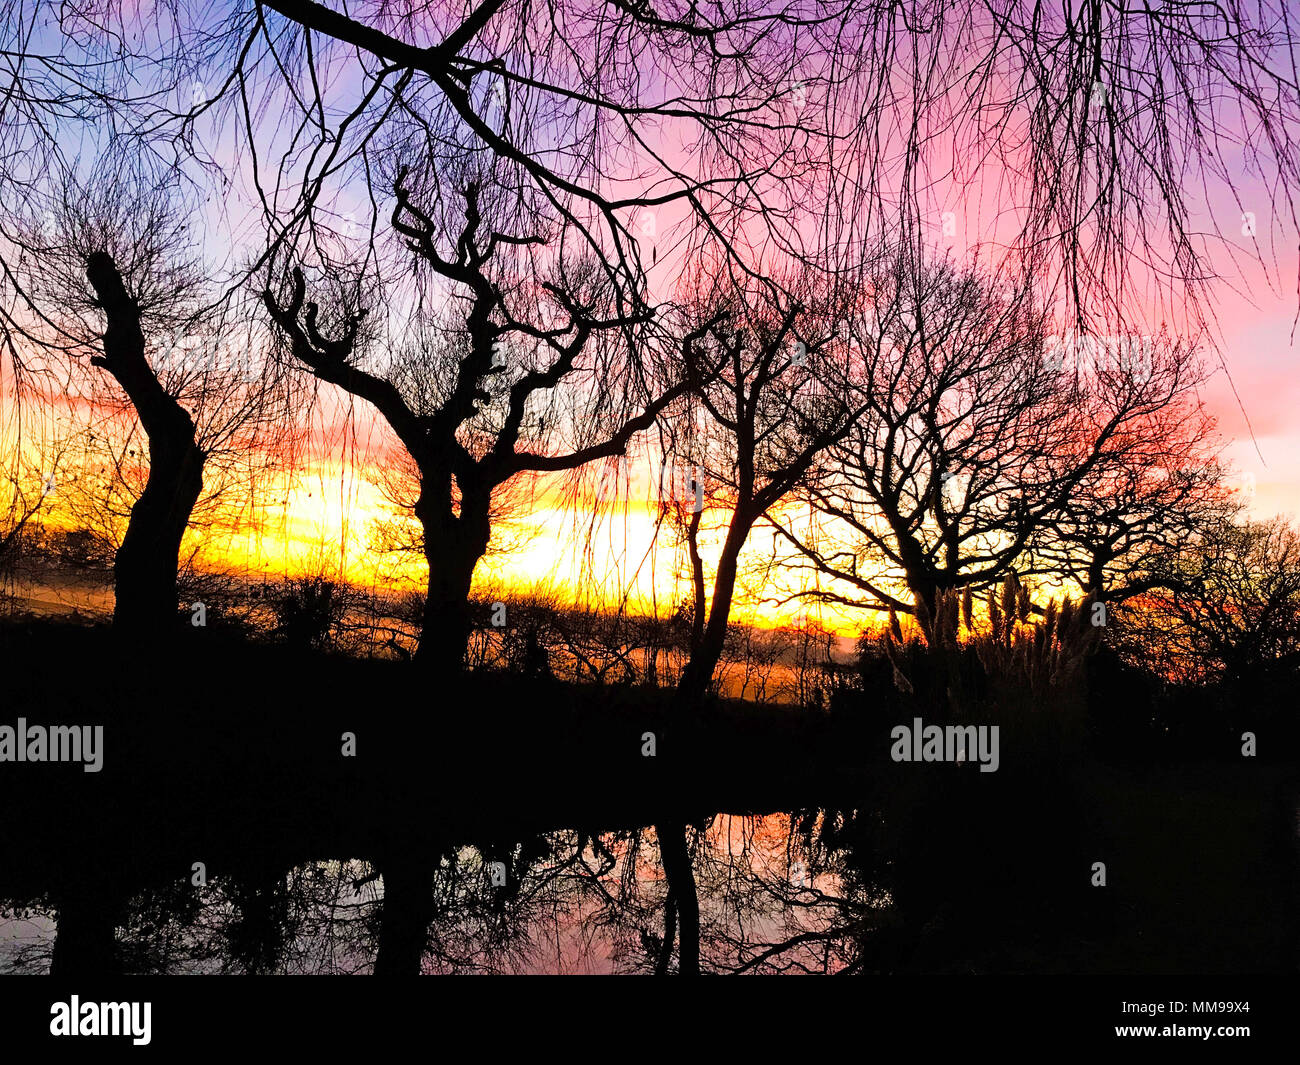 Dramatic winter sunsets with trees, Cheshire, England, UK - Stock Image